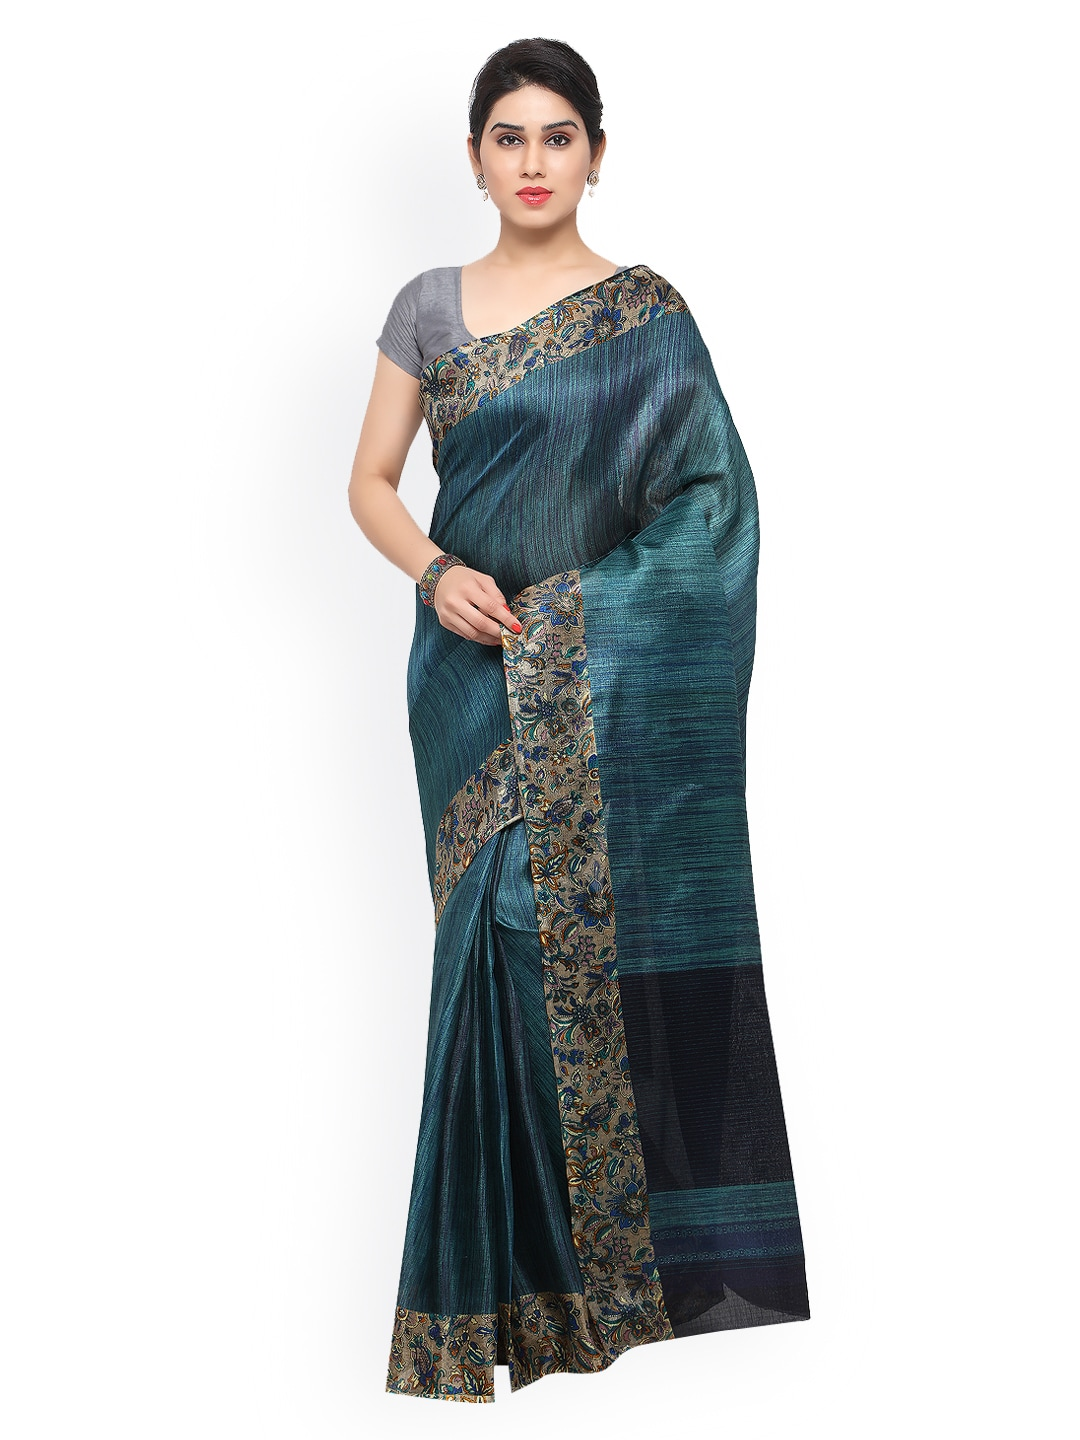 Caps Sarees Sarees Blouse - Buy Caps Sarees Sarees Blouse online in India 499858a505b4